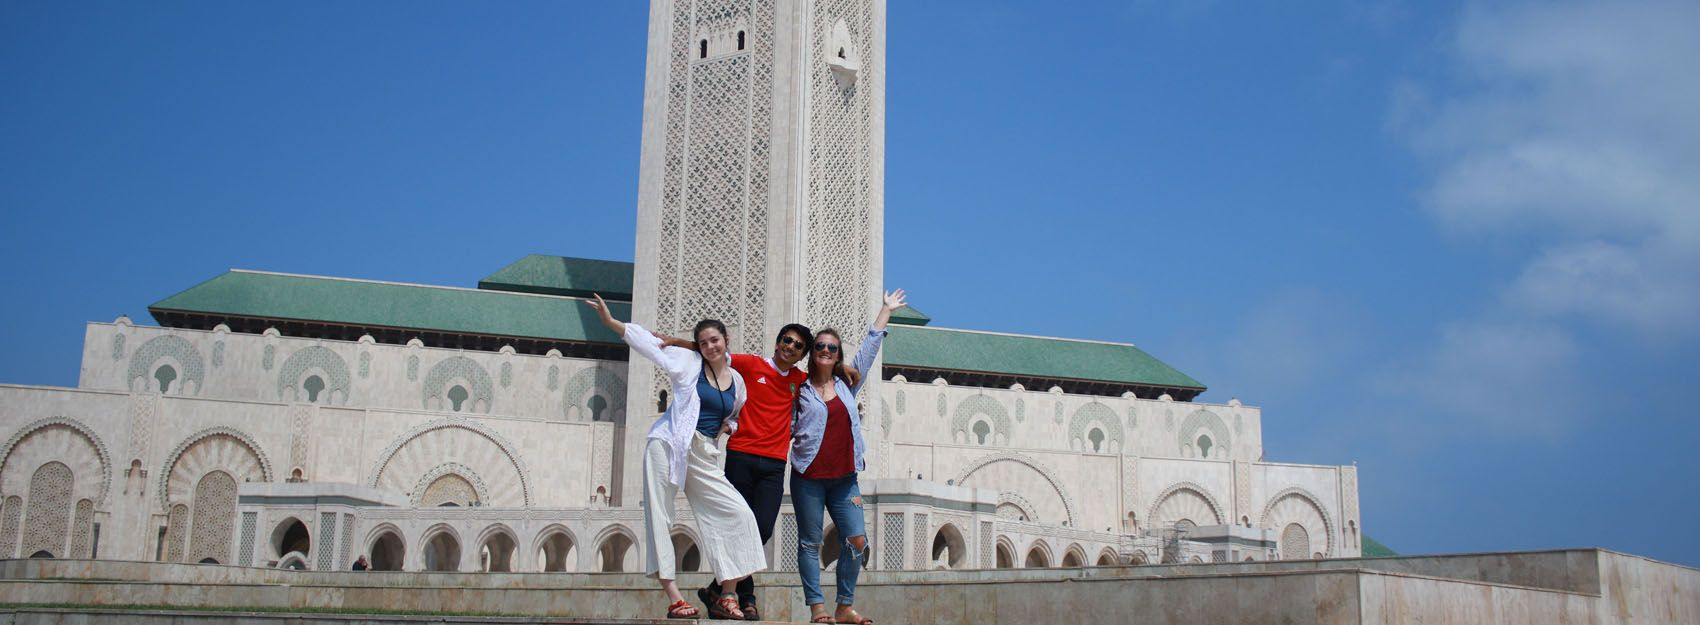 students posing in front of tower in casablanca, morocco